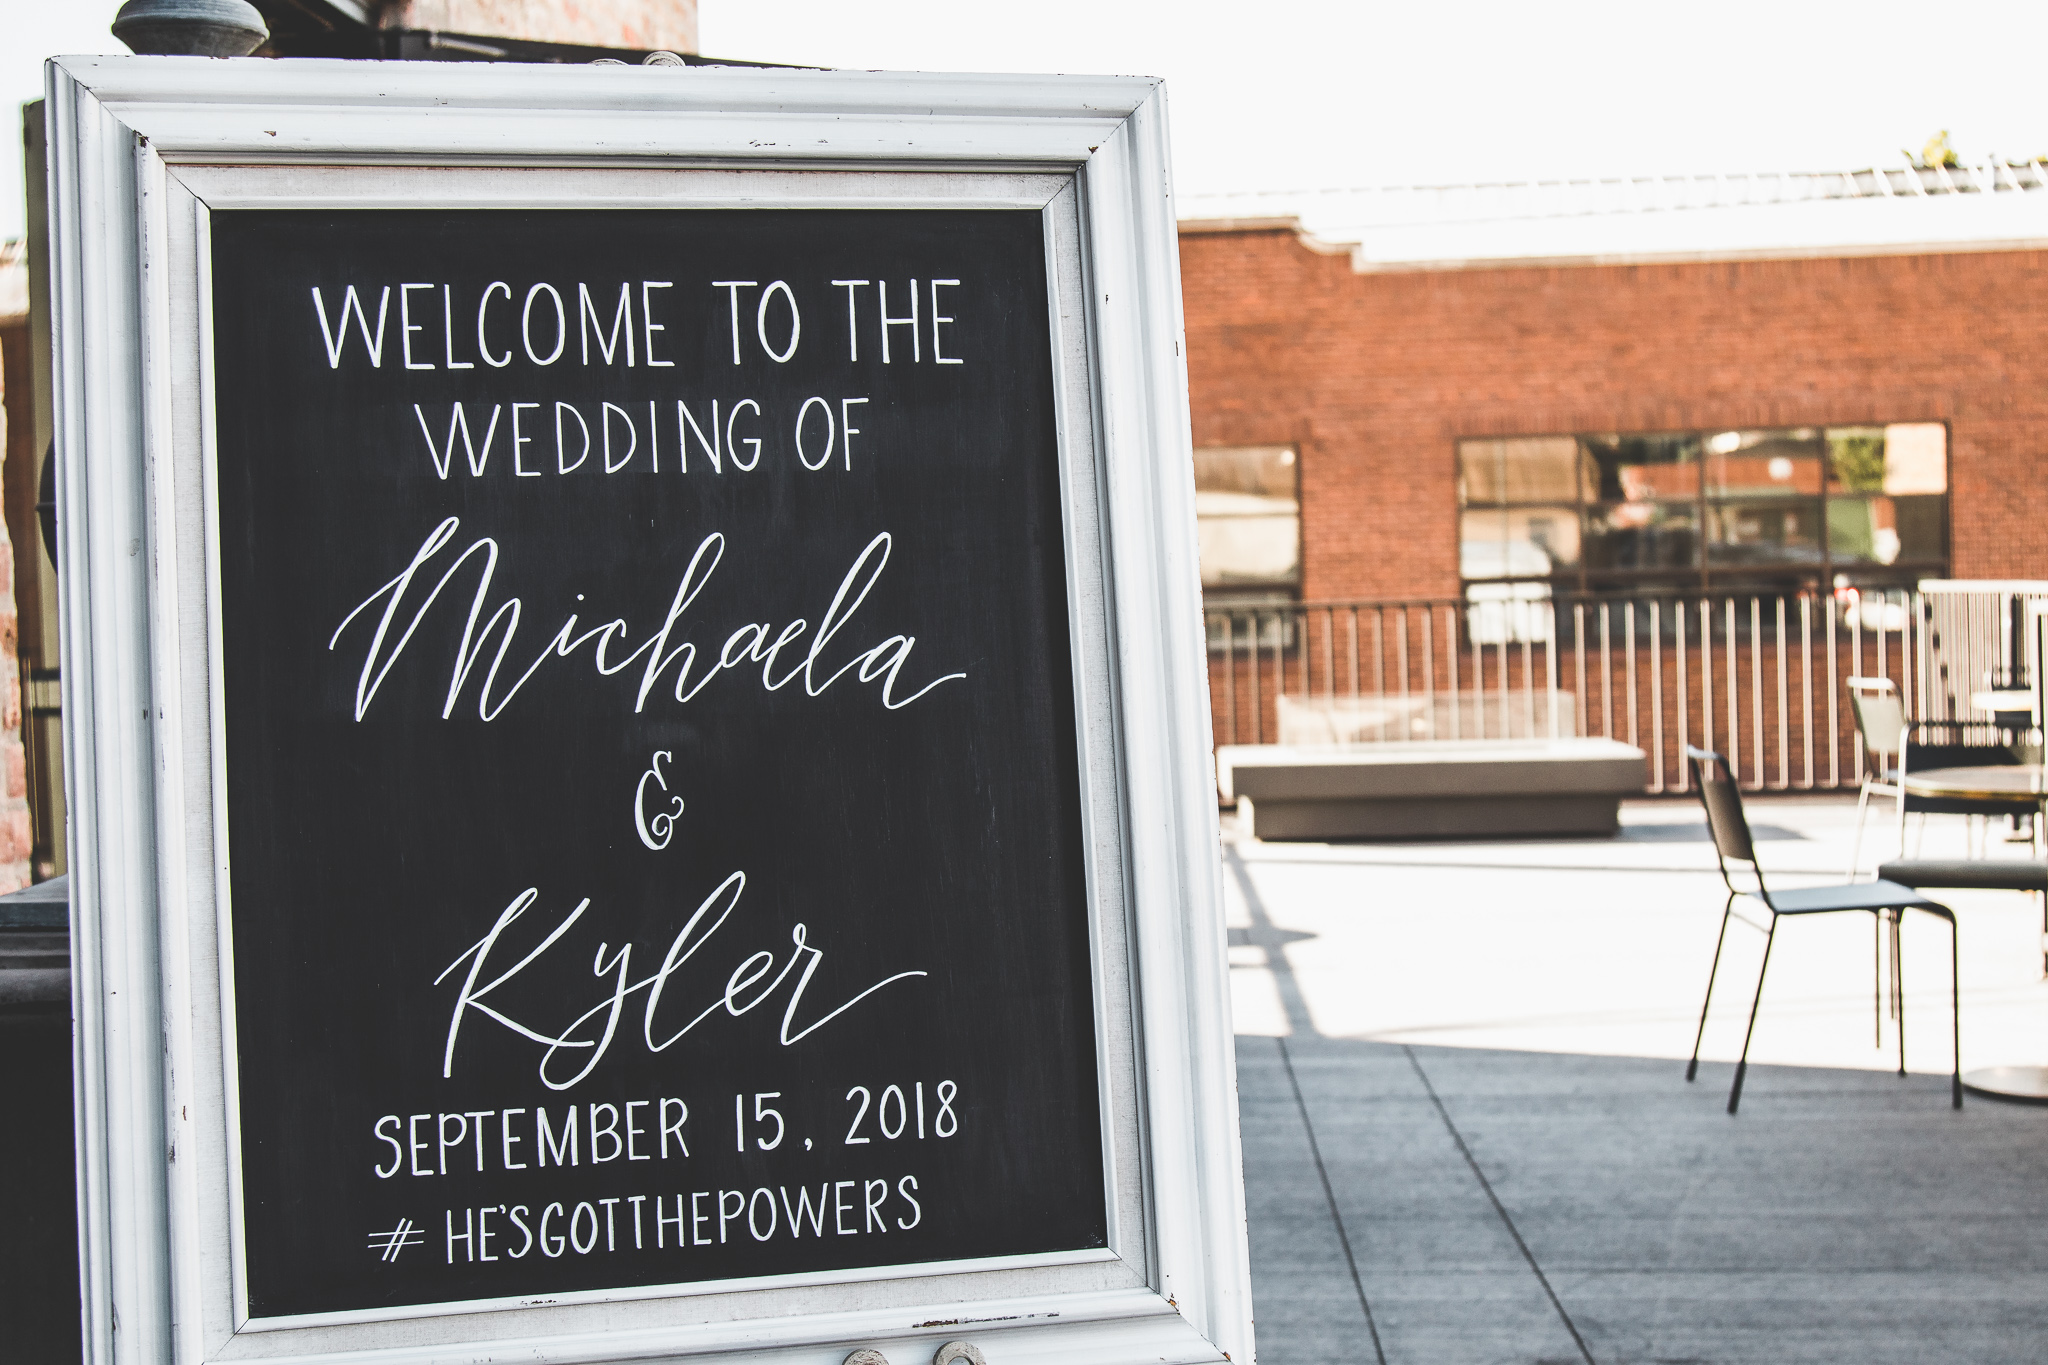 20180915wedding-kyler-michaela-425.jpg